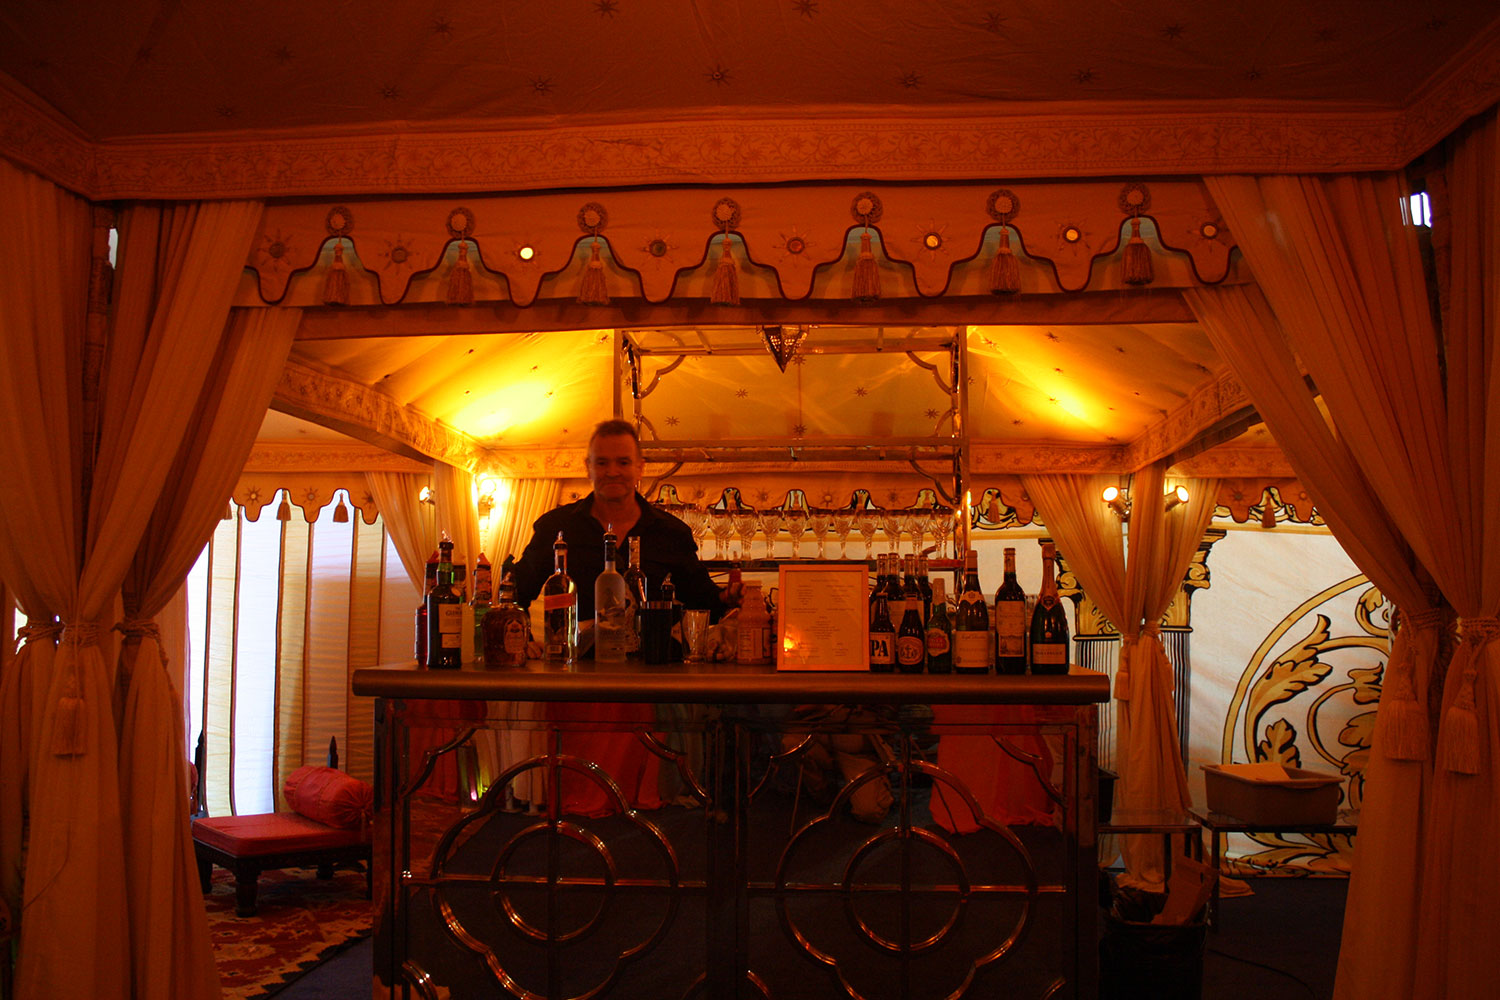 raj-tents-old-hollywood-theme-bar.jpg